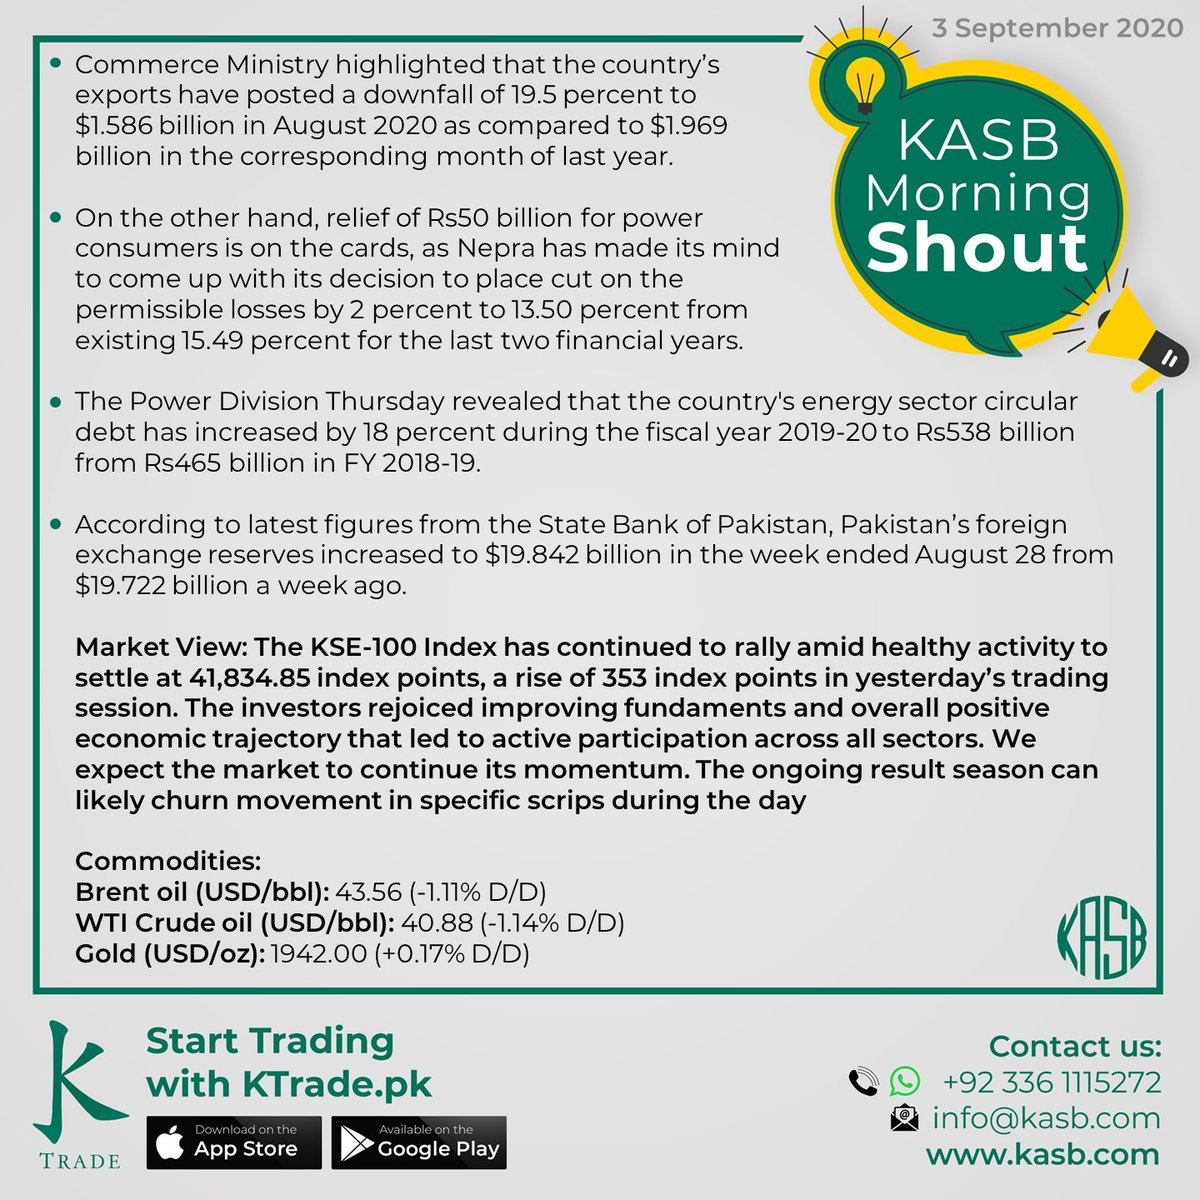 KASB Morning Shout: Our views on today's news #kasb #smartinvesting #psx #stockmarket #KTrade #onlinetrading #pakistaneconomy #imrankhan #sbp #inflation #kse100 #brokeragehouse #psxstocks #marketupdate #emergingmarkets #frontiermarkets #news #morning #today #views https://t.co/mv8OC1V0vh